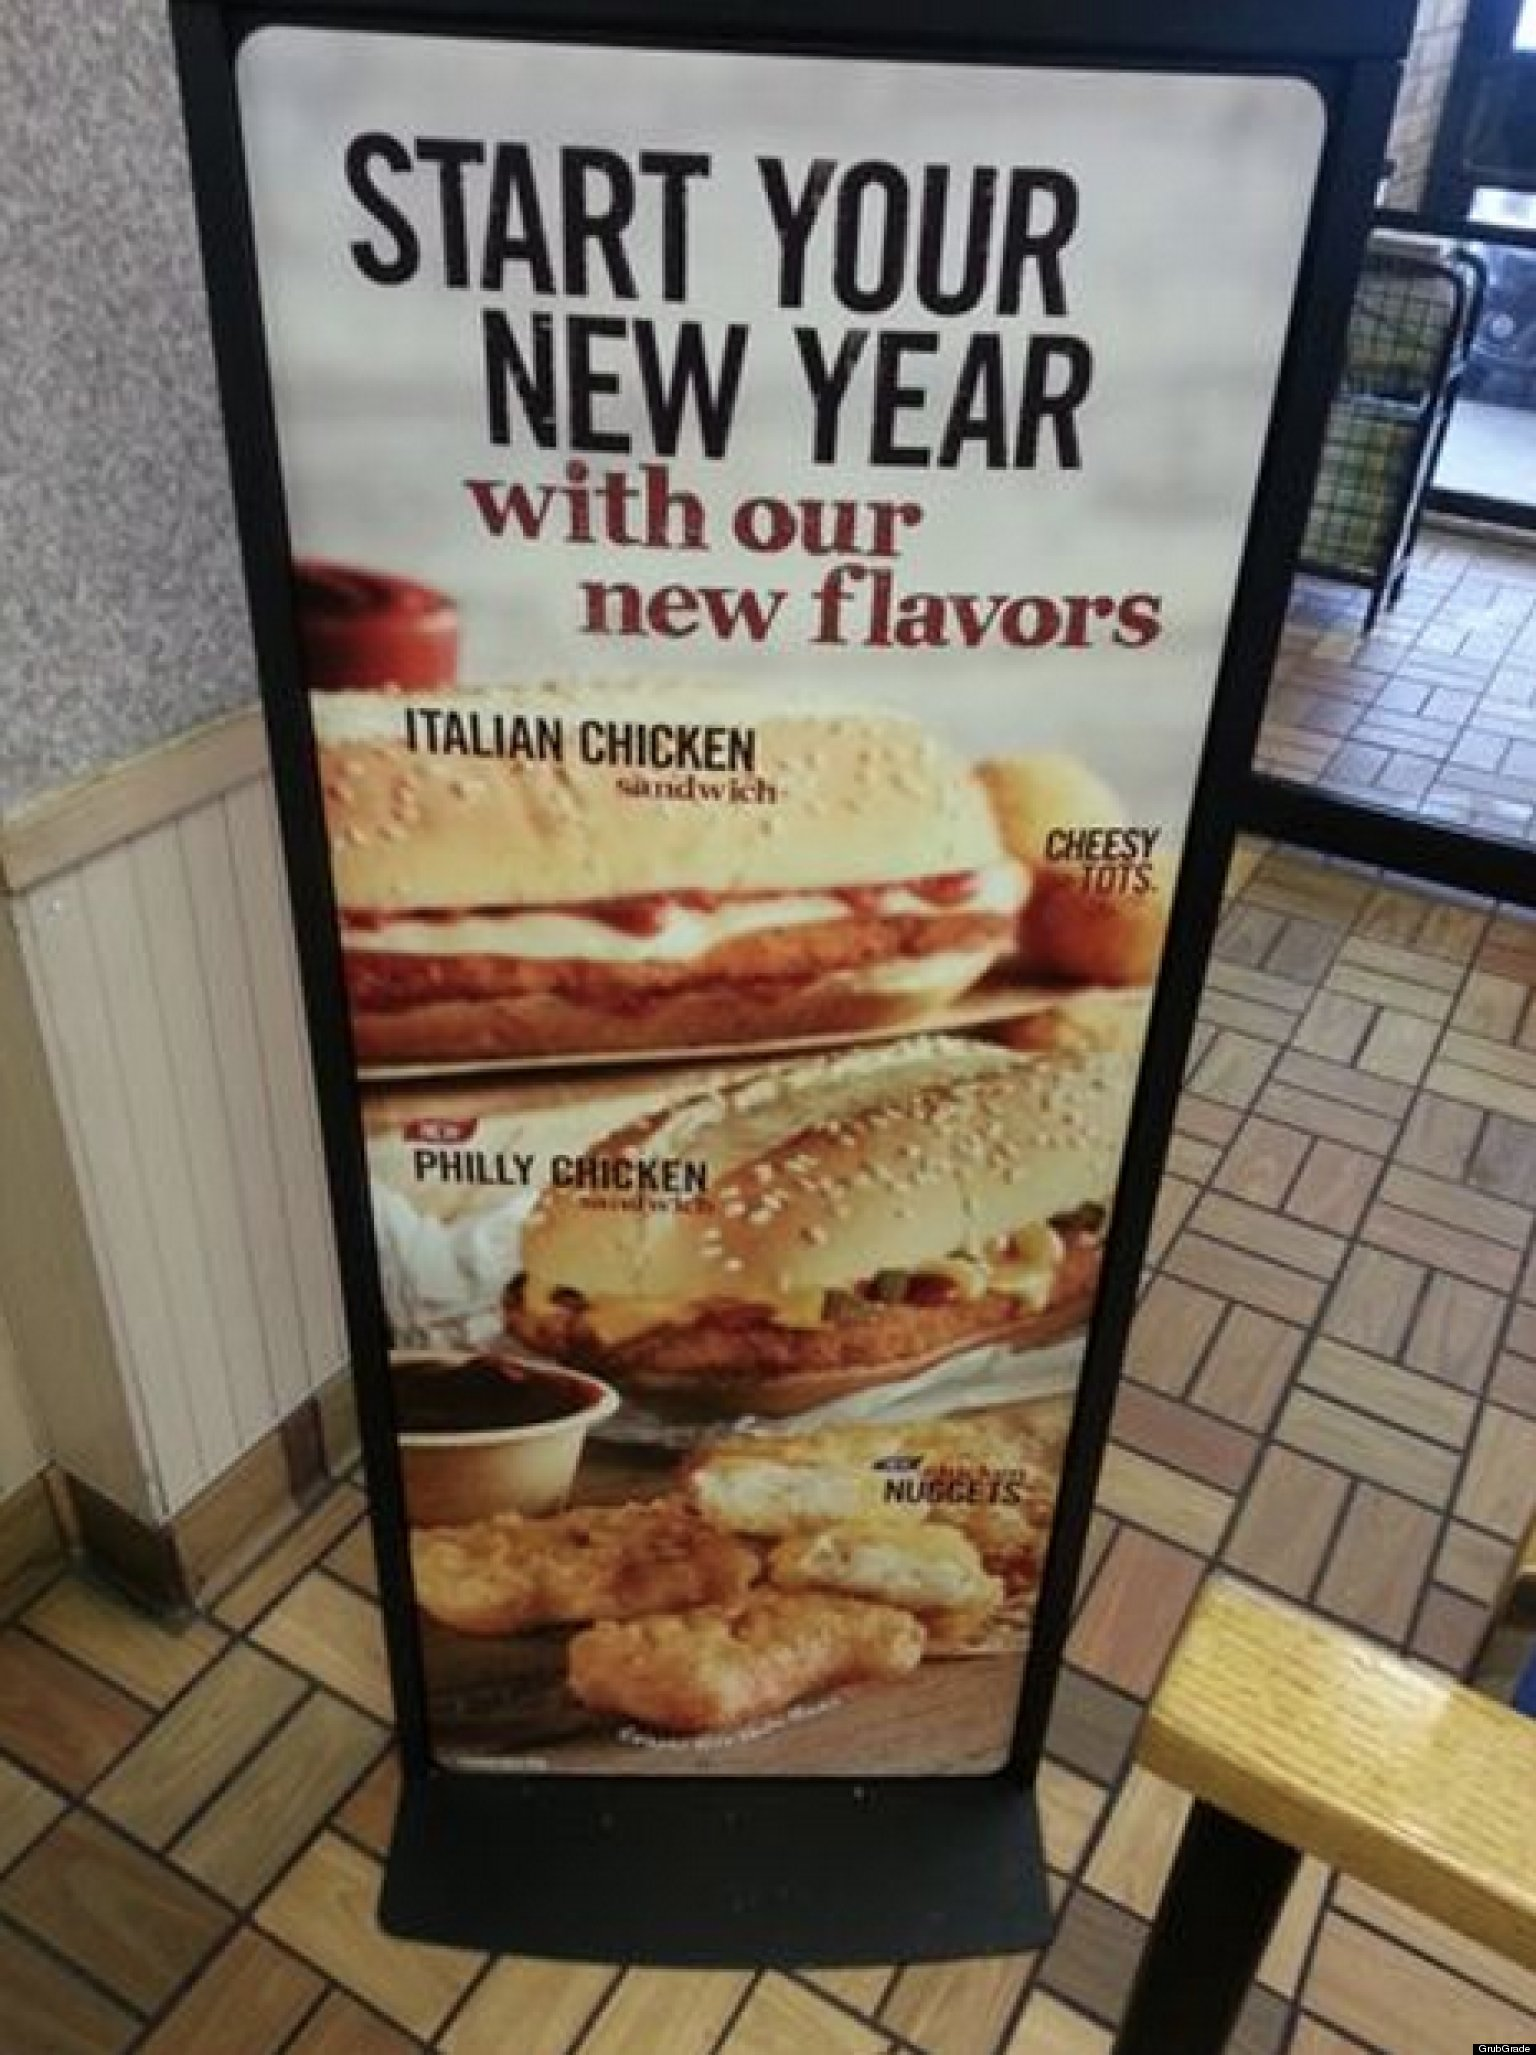 Spotted New Burger King Menu Items For 2013